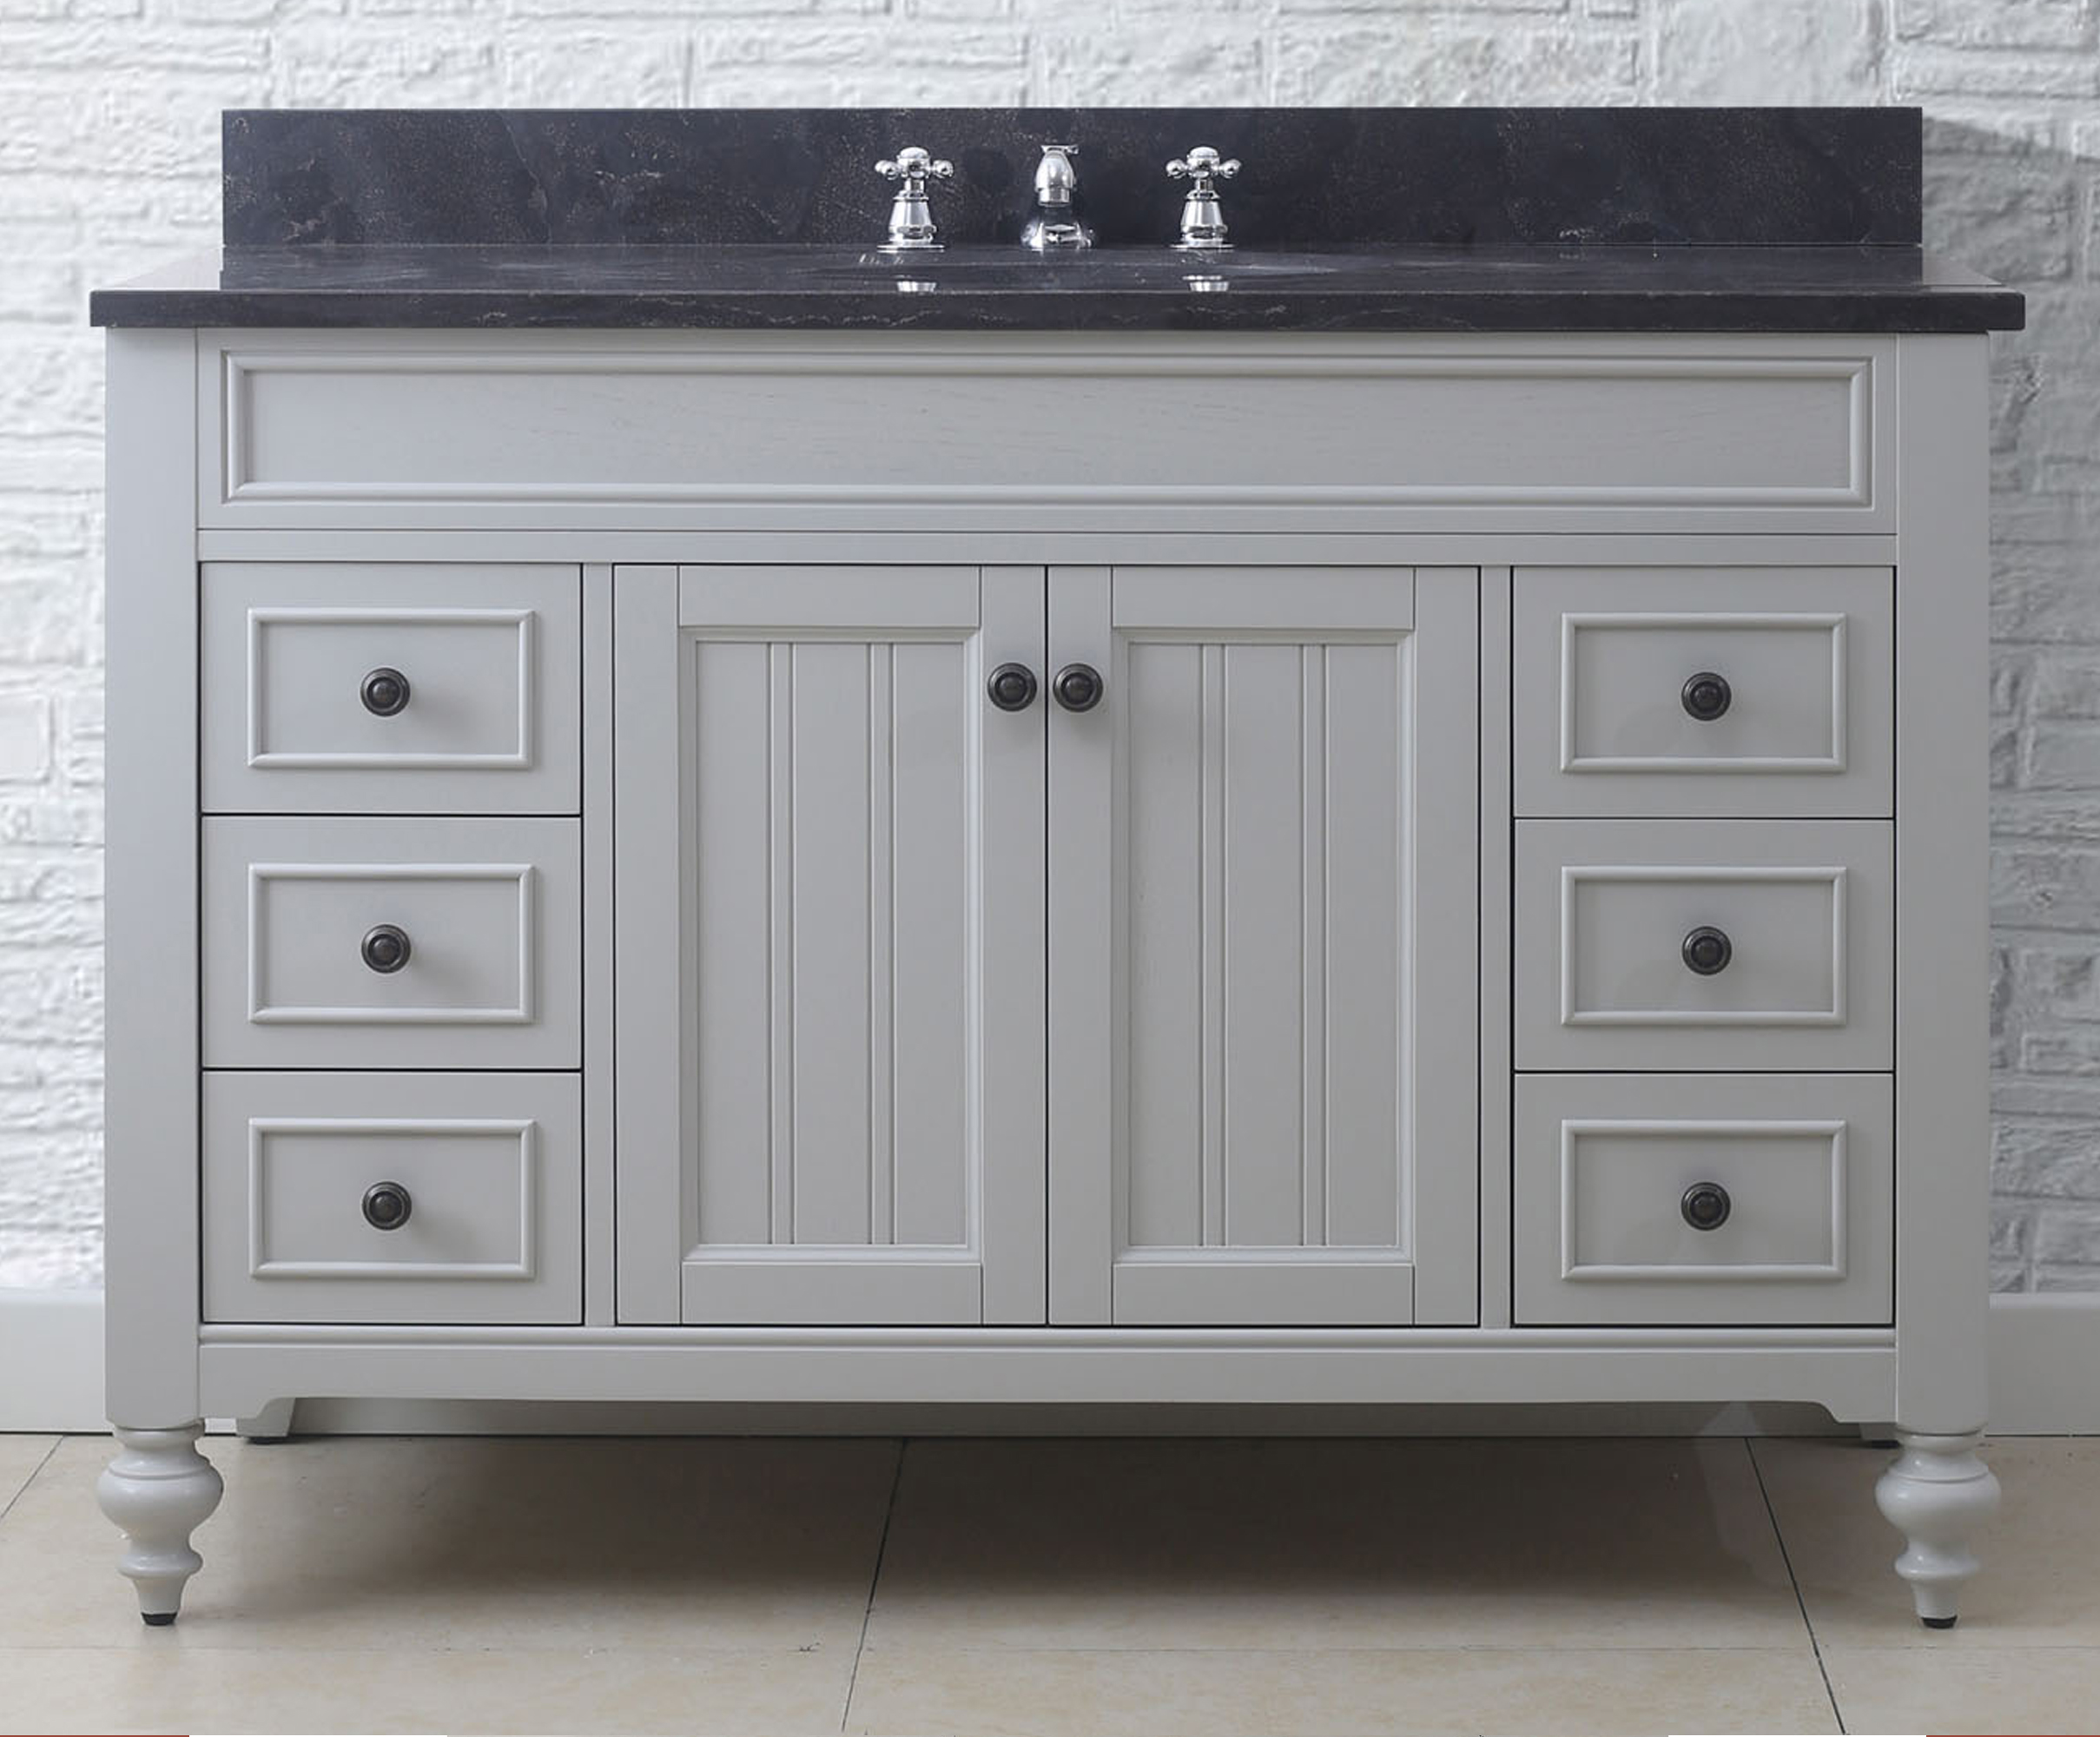 "Ariel Kensington 37"" Left Offset Single Sink Vanity Set in Grey"